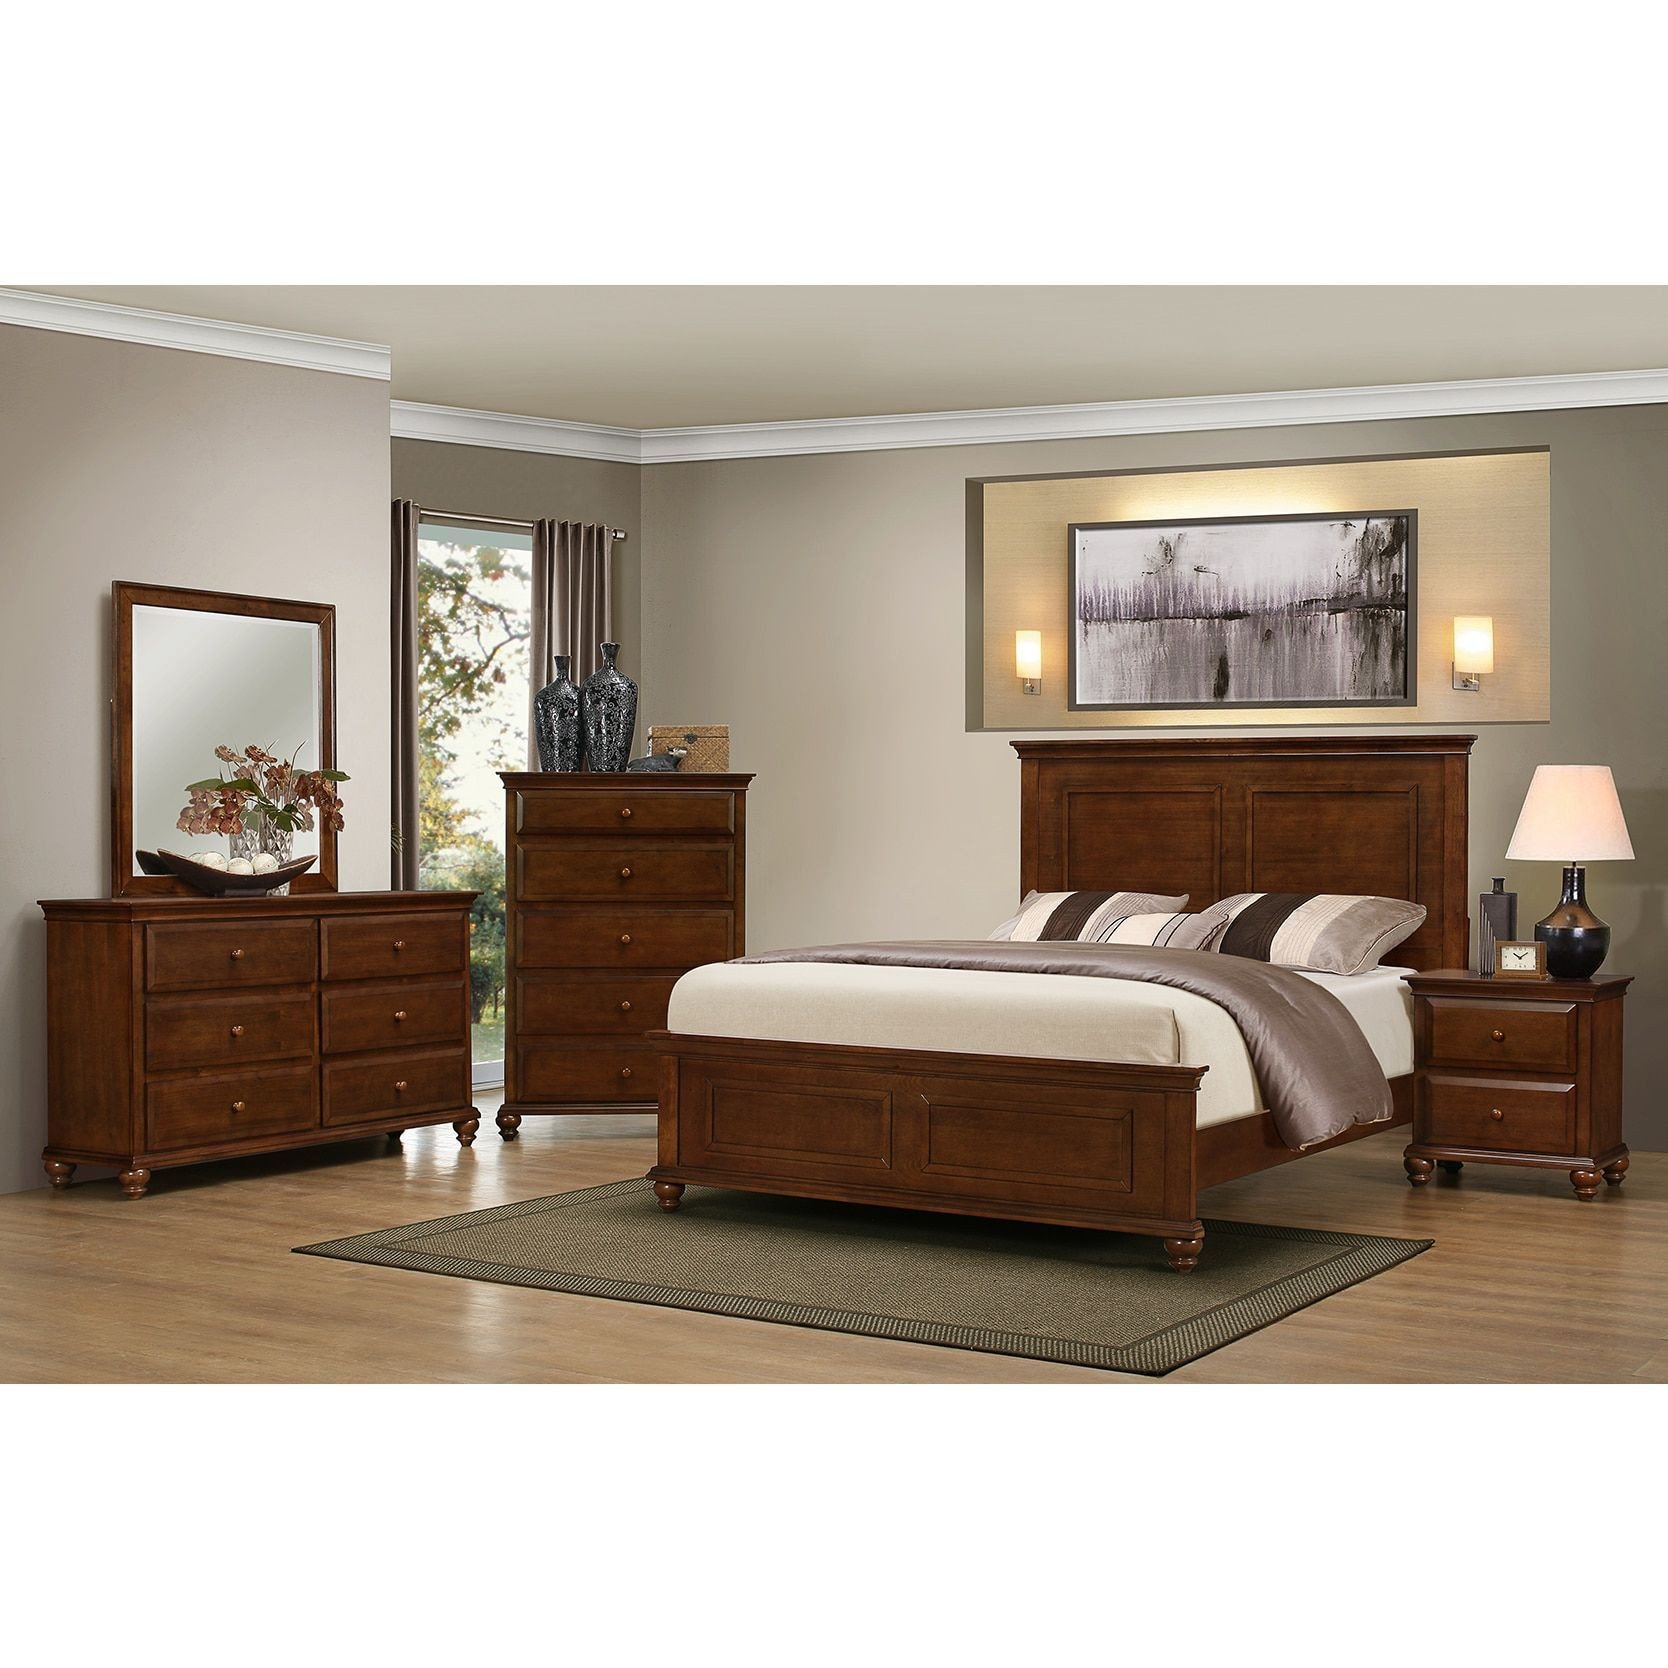 3 Piece Bedroom Furniture Set Awesome Simmons Casegoods Raleigh Collection 3 Piece Queen King